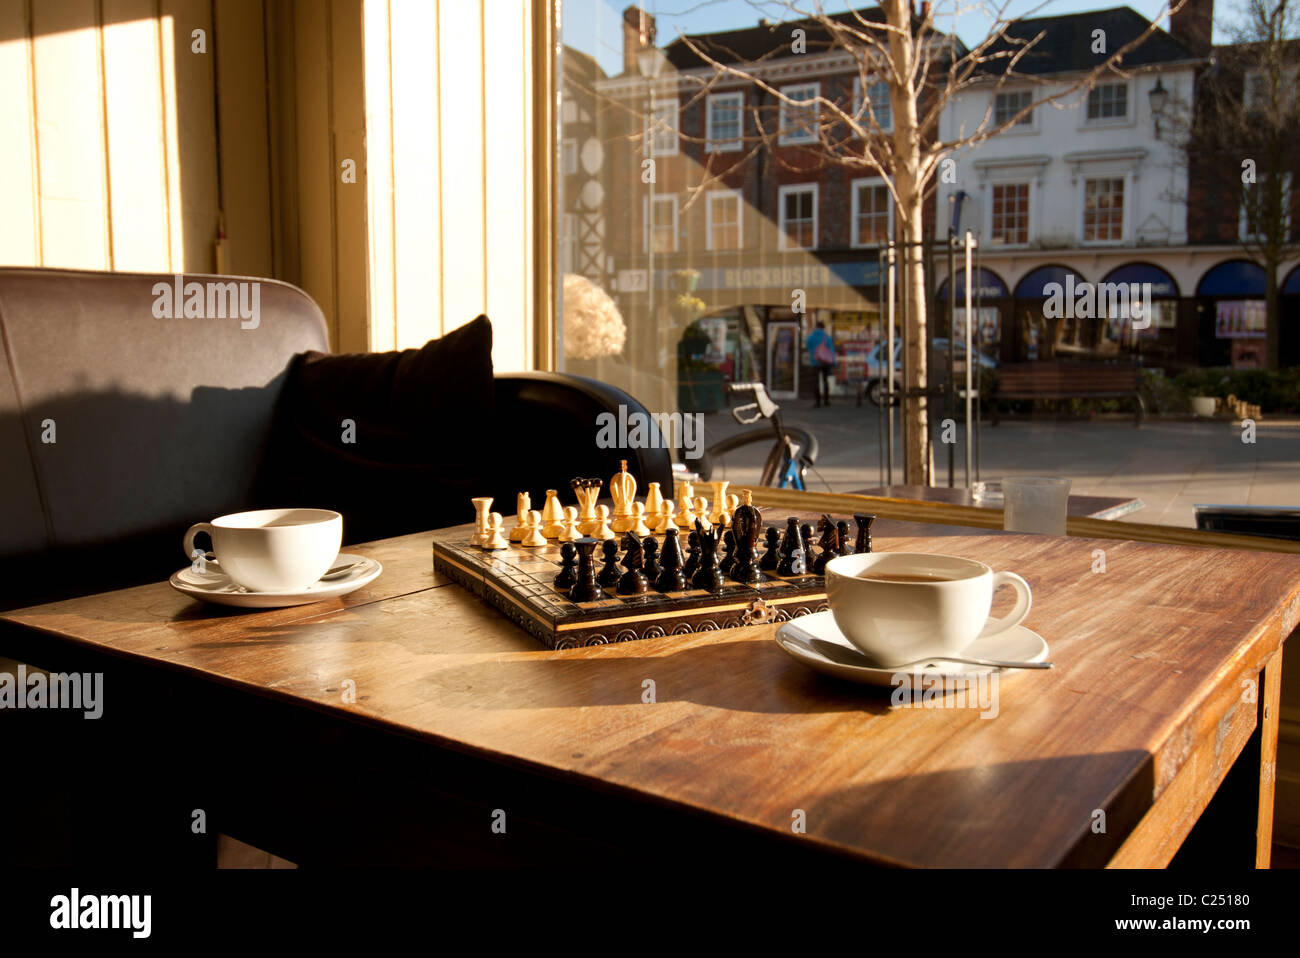 Game Of Chess Set Out On A Coffee Table With Two Cups